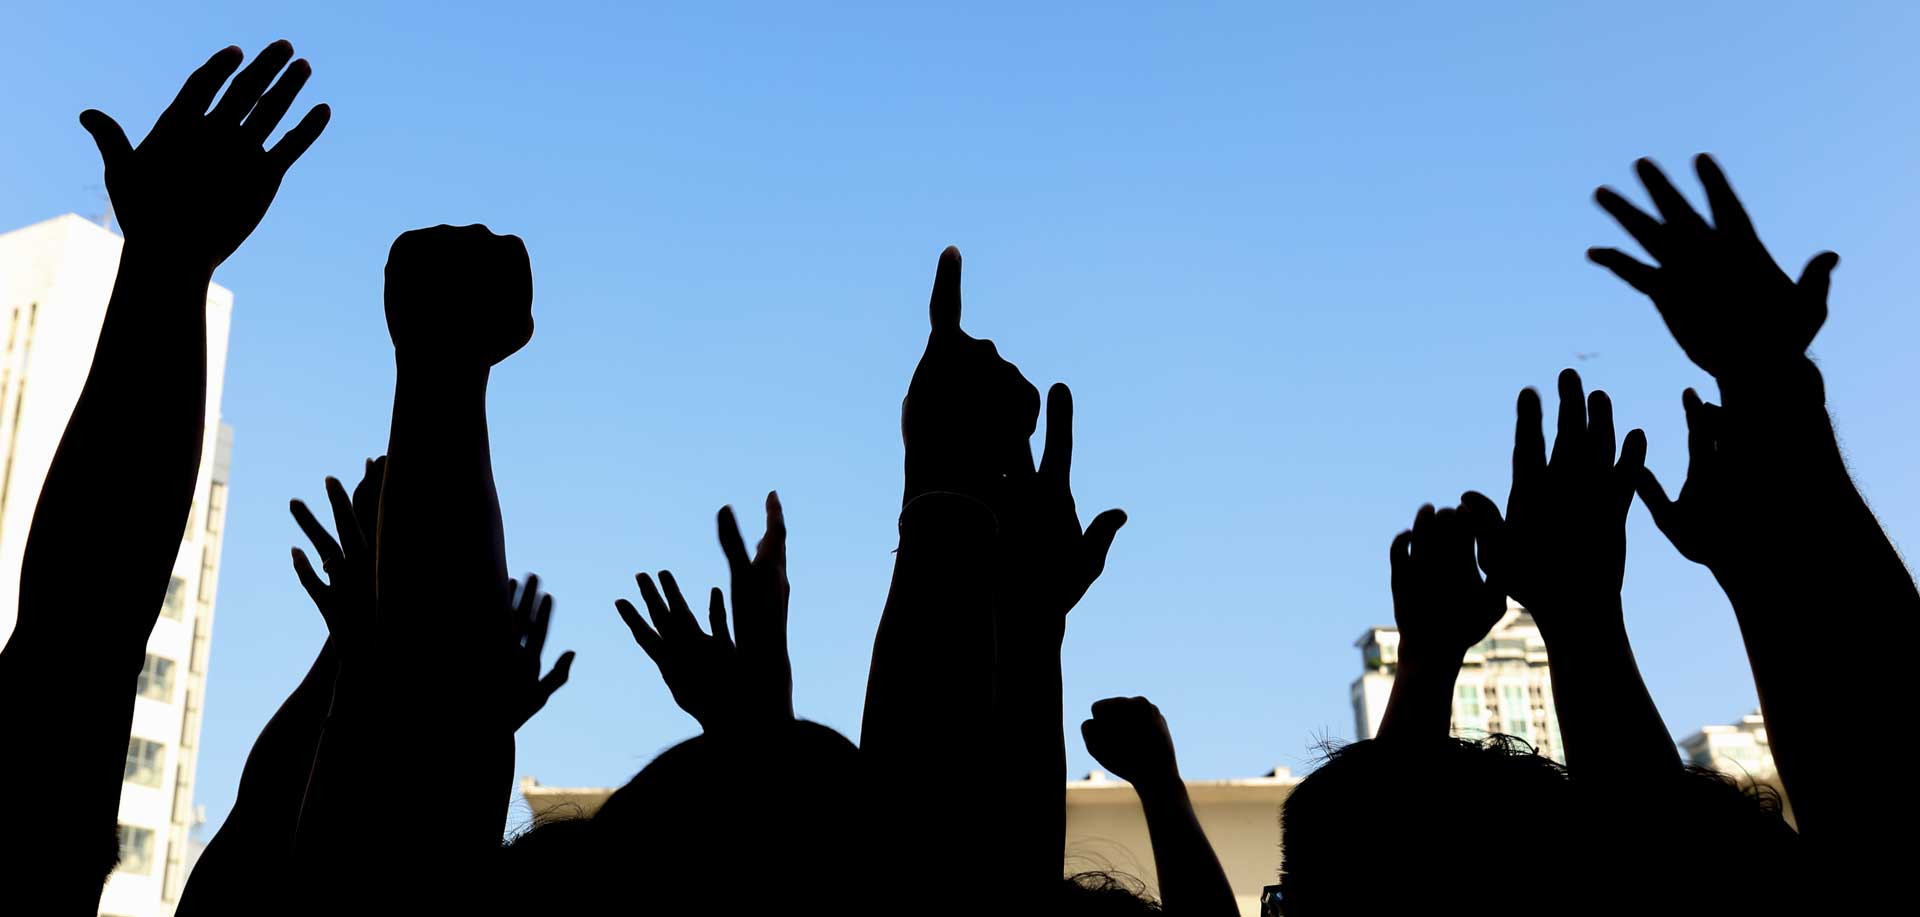 group of people in silhouette with hands raised in the air